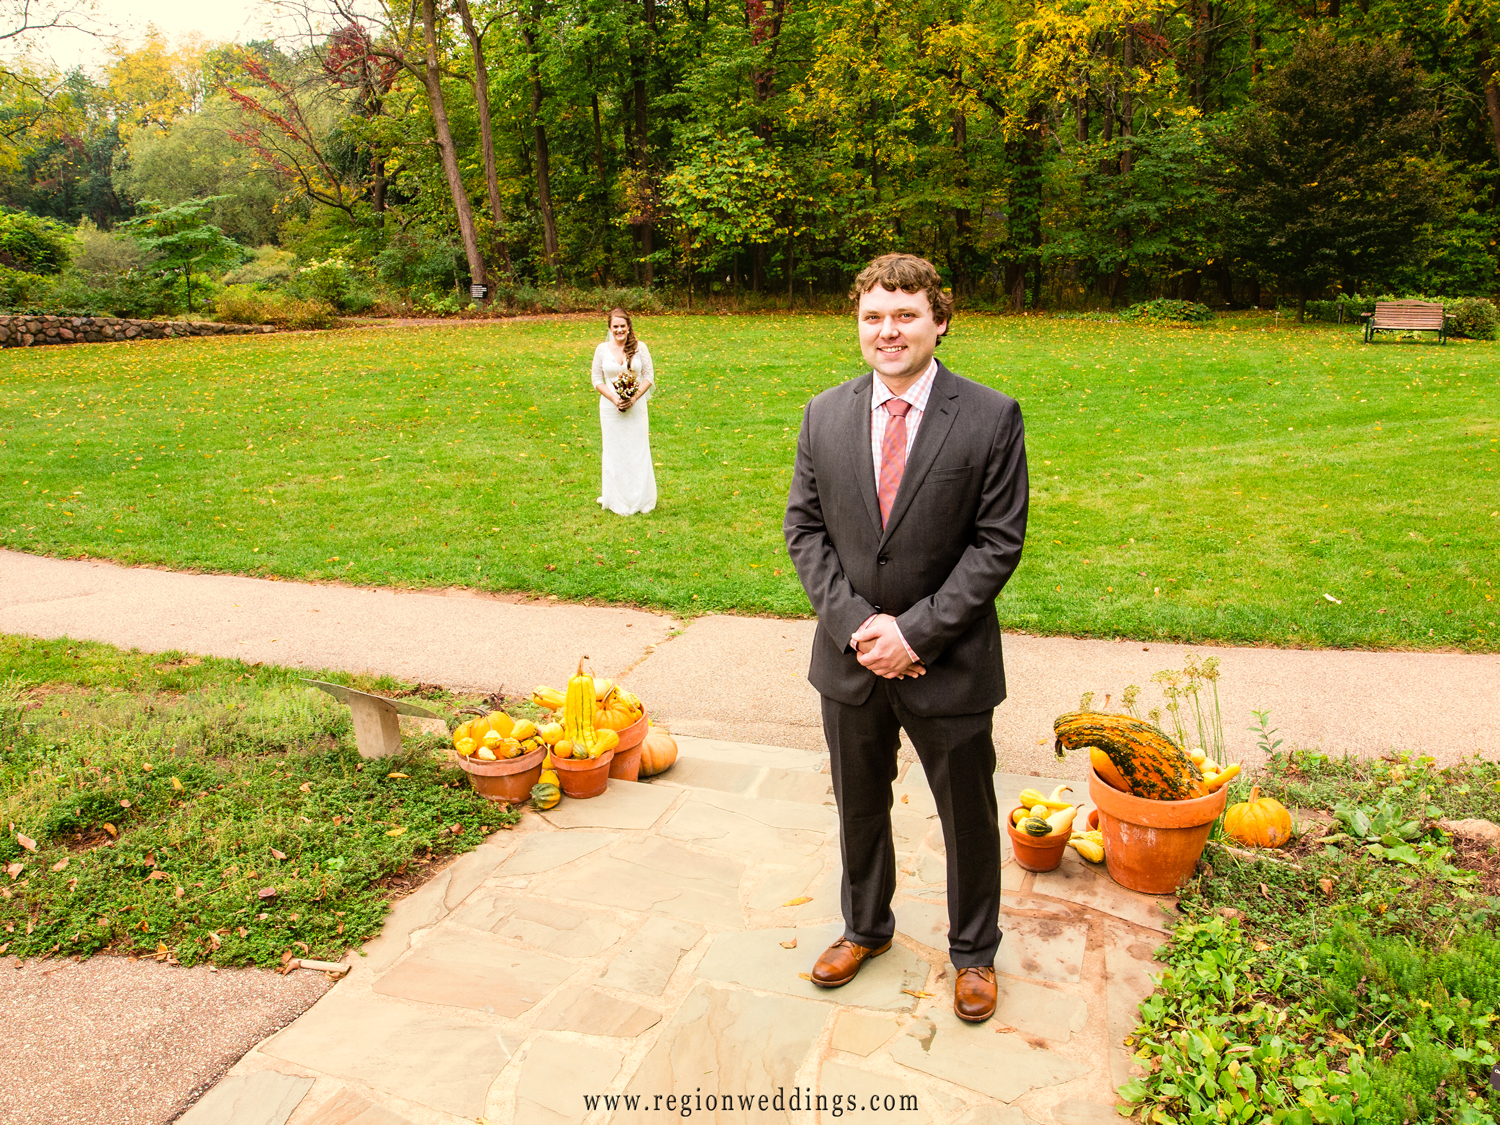 The bride walks toward her soon to be husband in a beautiful green field surrounded by trees and Autumn leaves.